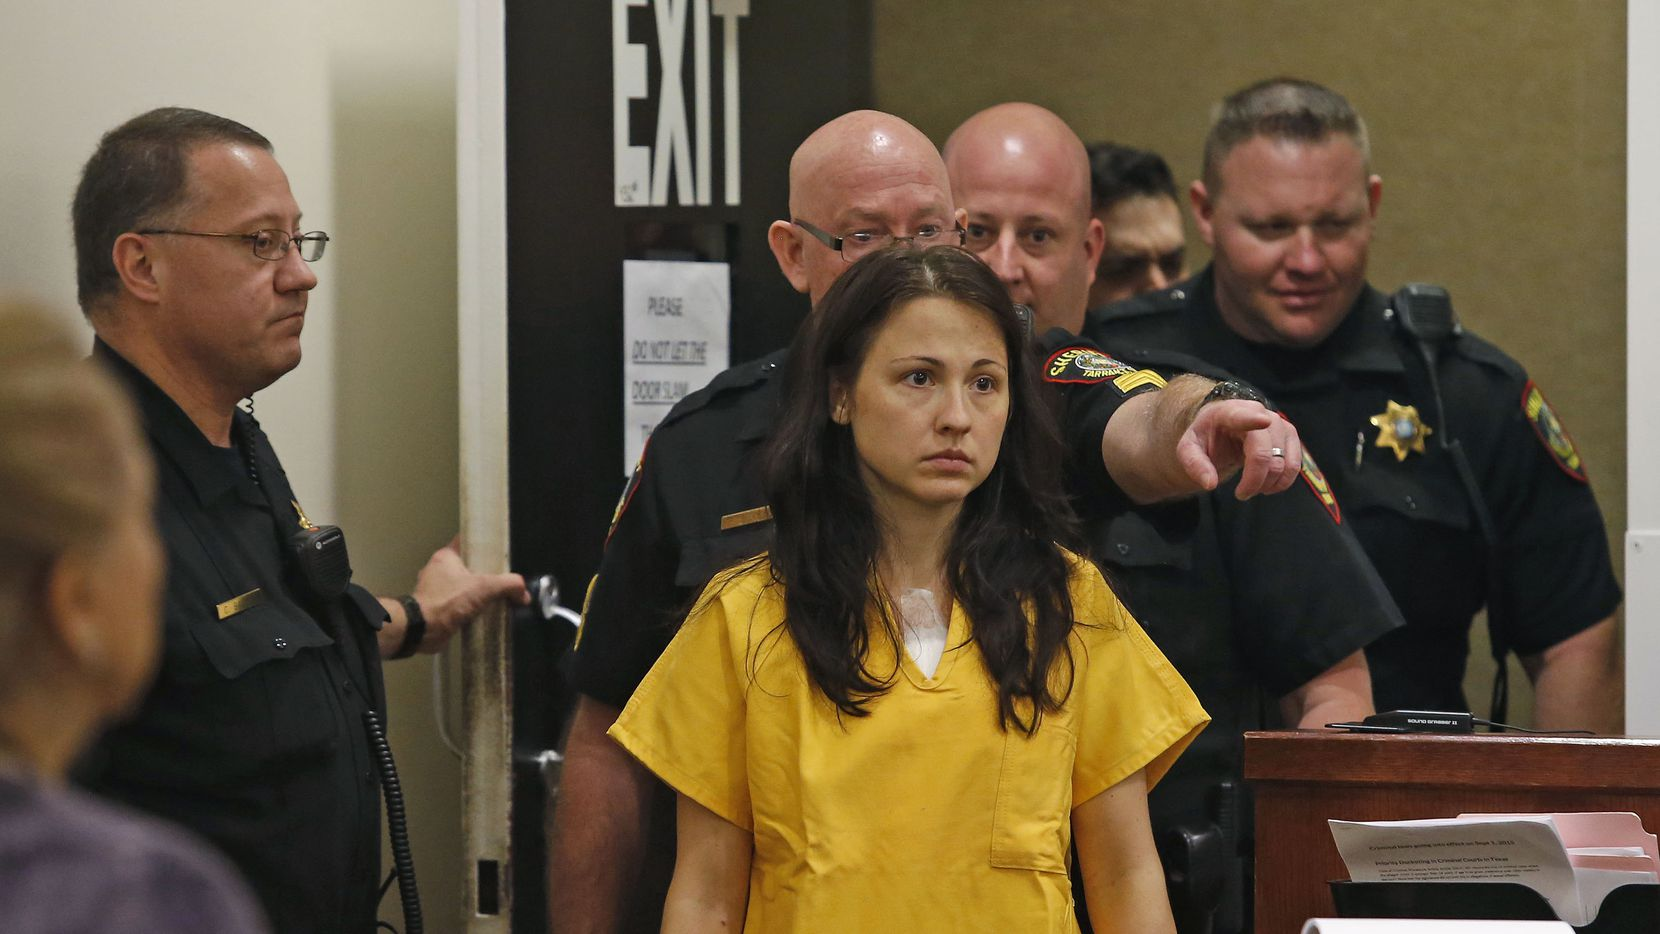 Sofya Tsygankova, the estranged wife of renowned pianist Vadym Kholodenko, entered a plea of not guilty in March on two capital murder charges.